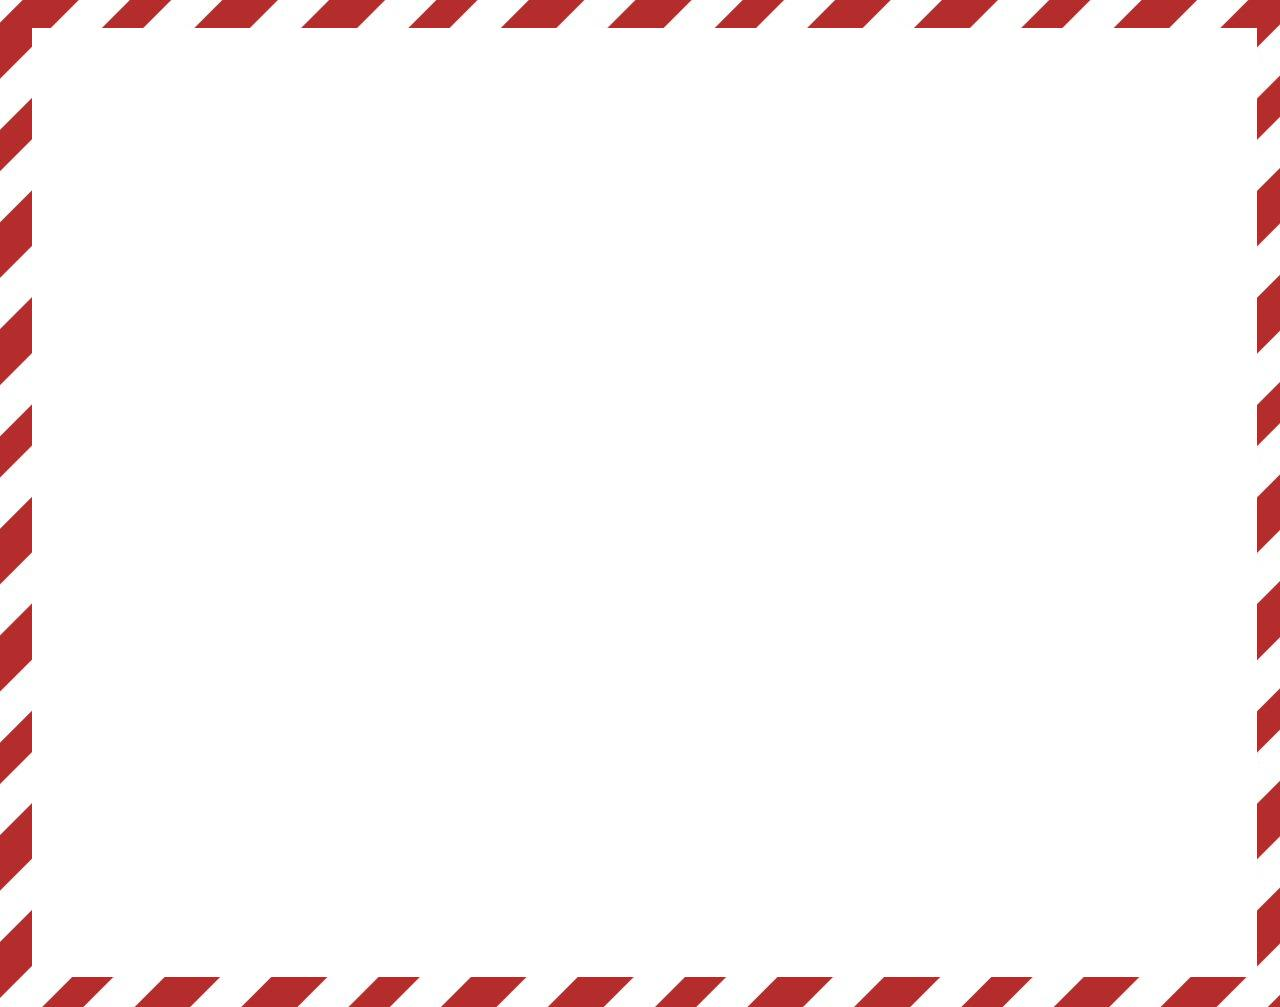 Candy Canes Christmas Border Page Borders   Auto Design Tech